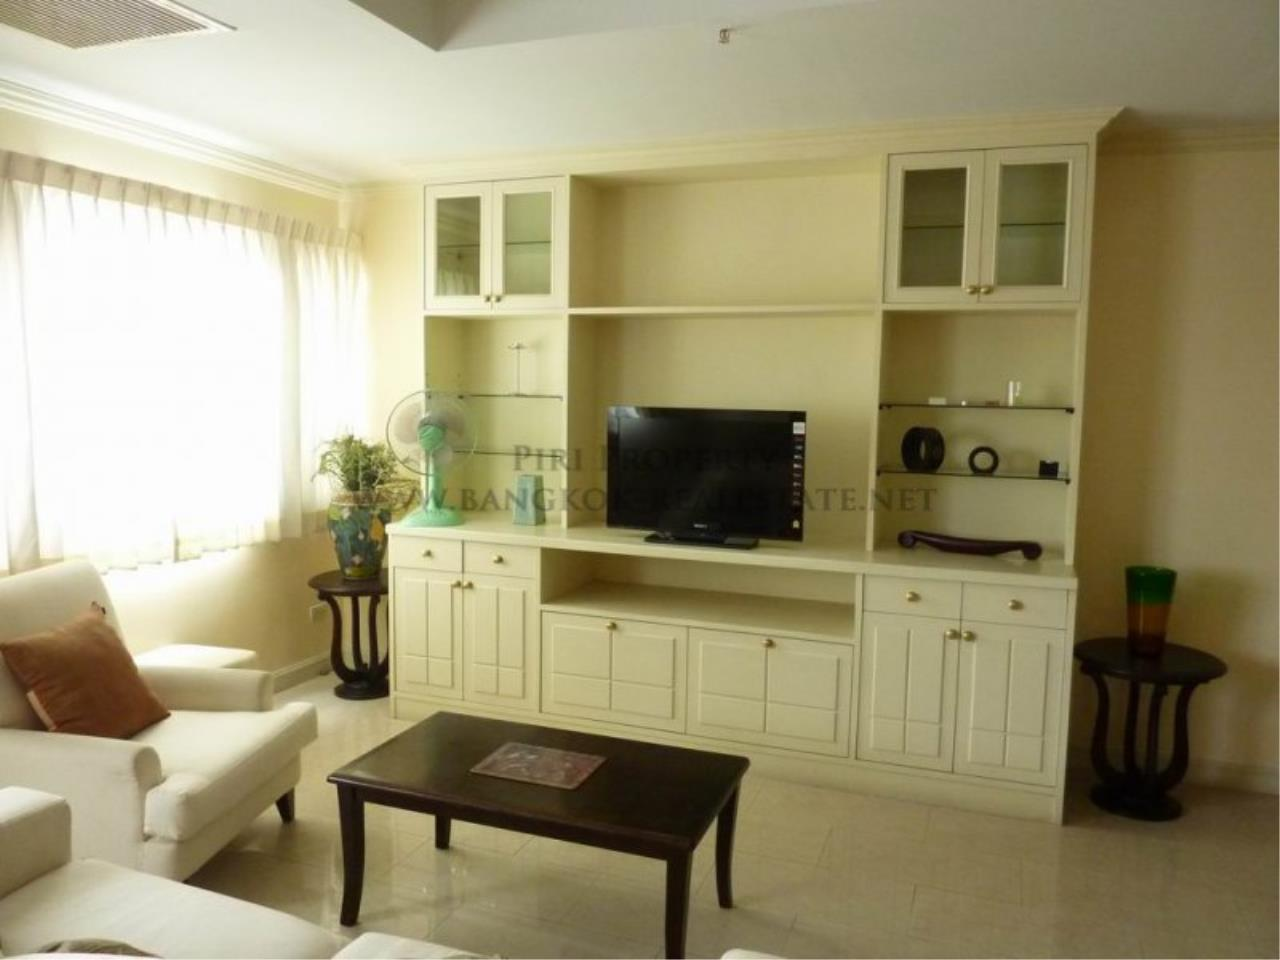 Piri Property Agency's Very spacious 2 Bedroom Condo in Ploenchit for Sale - Wittayu Complex 5